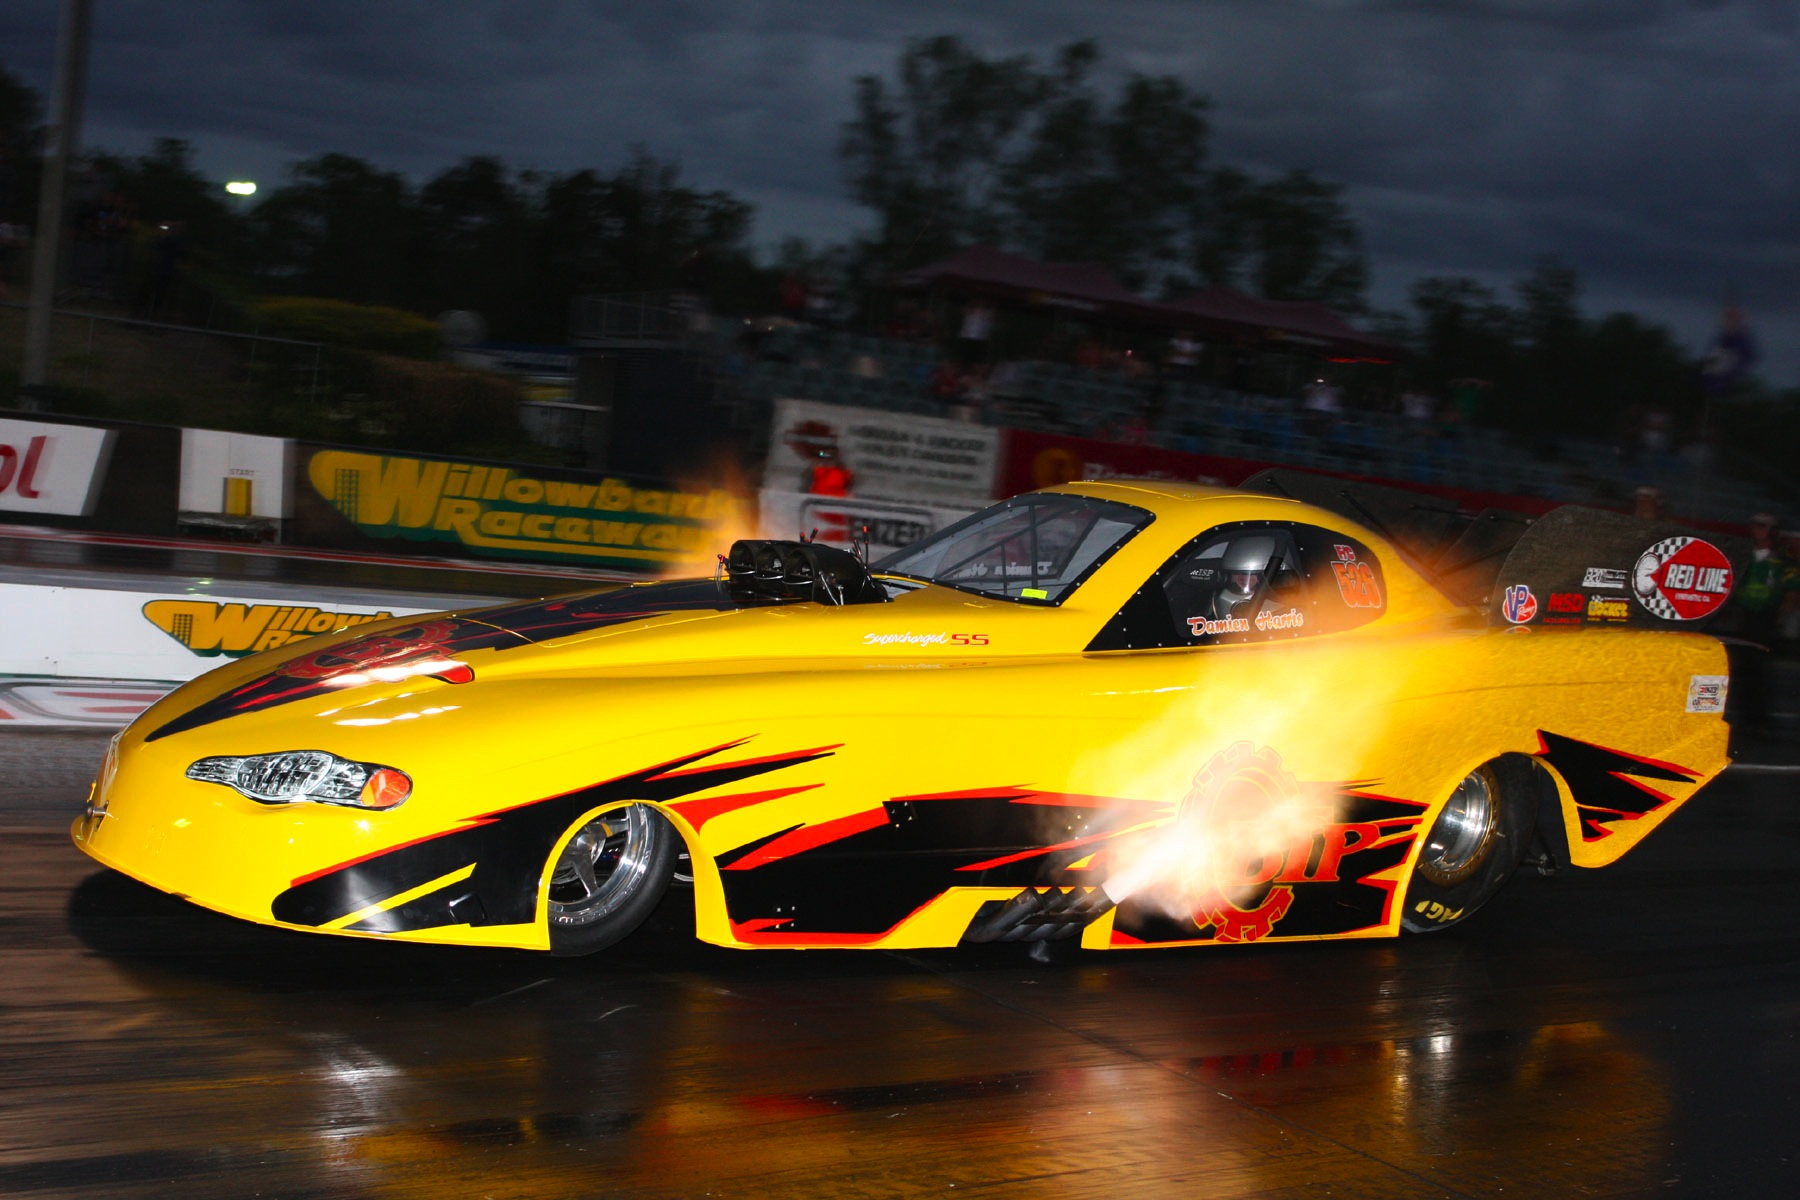 Aussies set to fire in Nitro Challenge